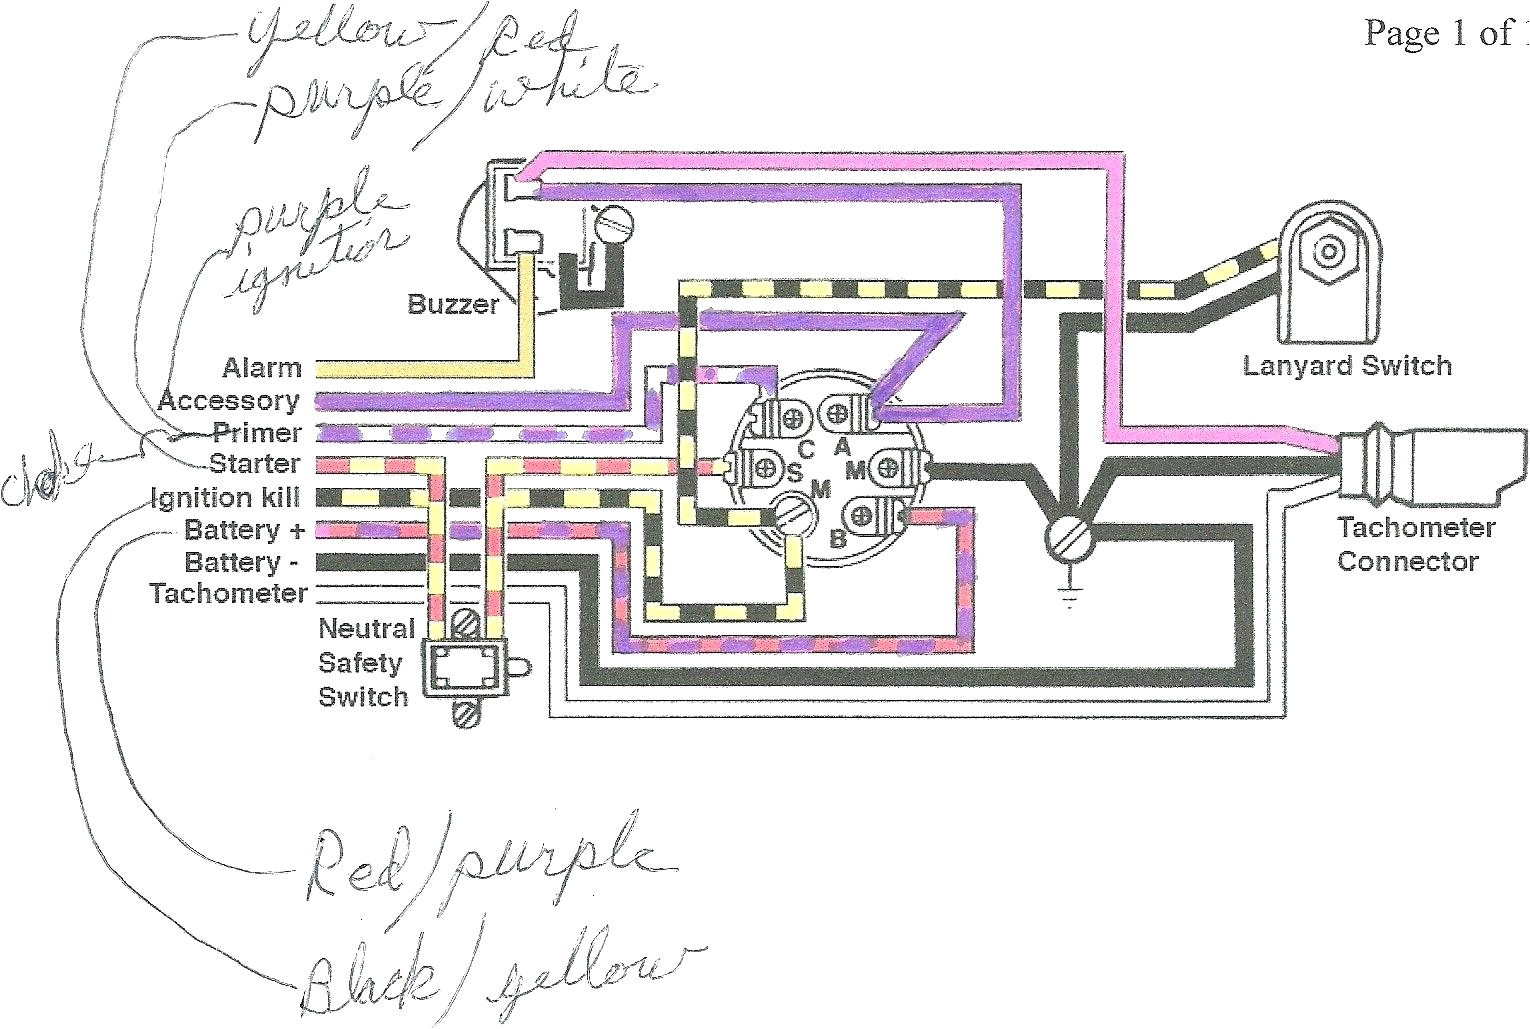 1530x1029 lawn mower ignition switch wiring diagram riding lawn mower drawing